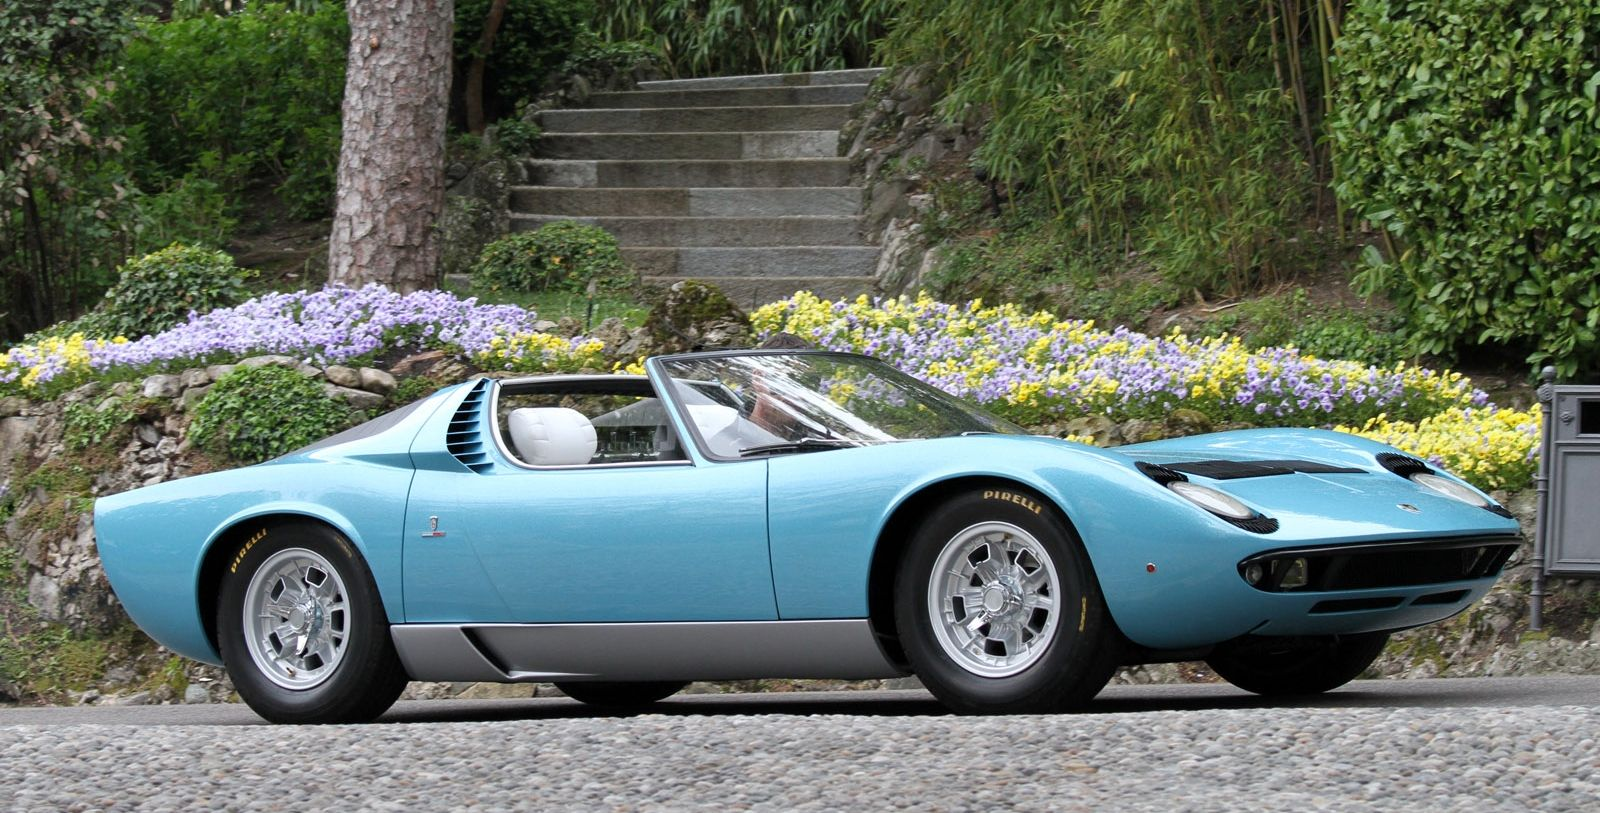 Power Cars Lamborghini Miura Roadster By Bertone Marcello Gandini